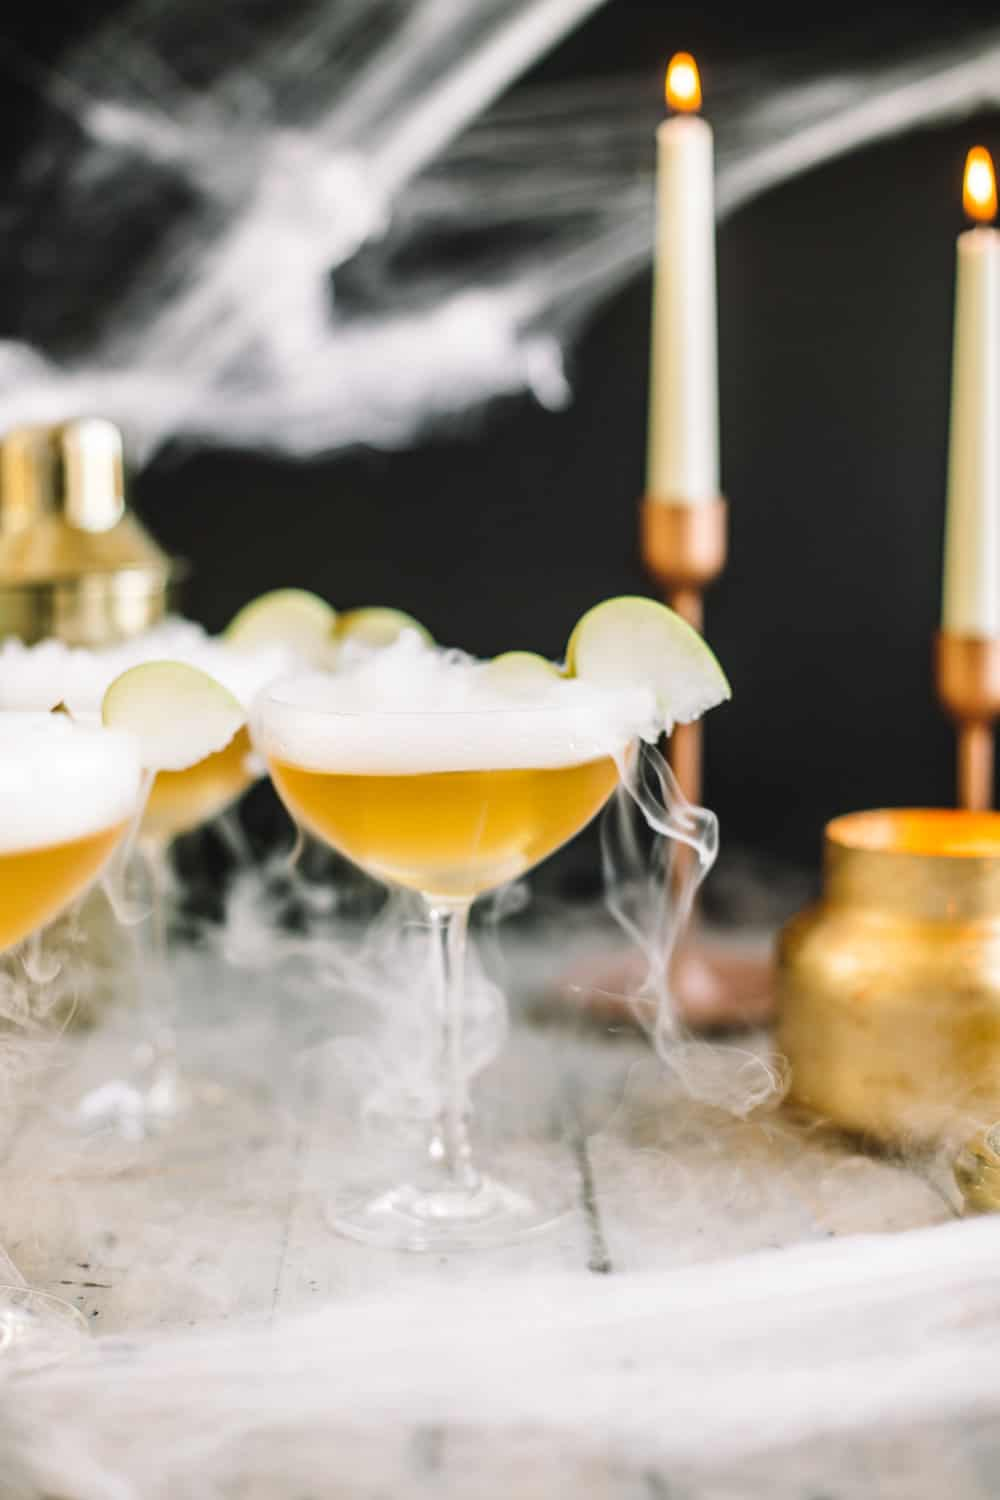 Elderflower wand martini garnished with dry ice and a sliced apple.